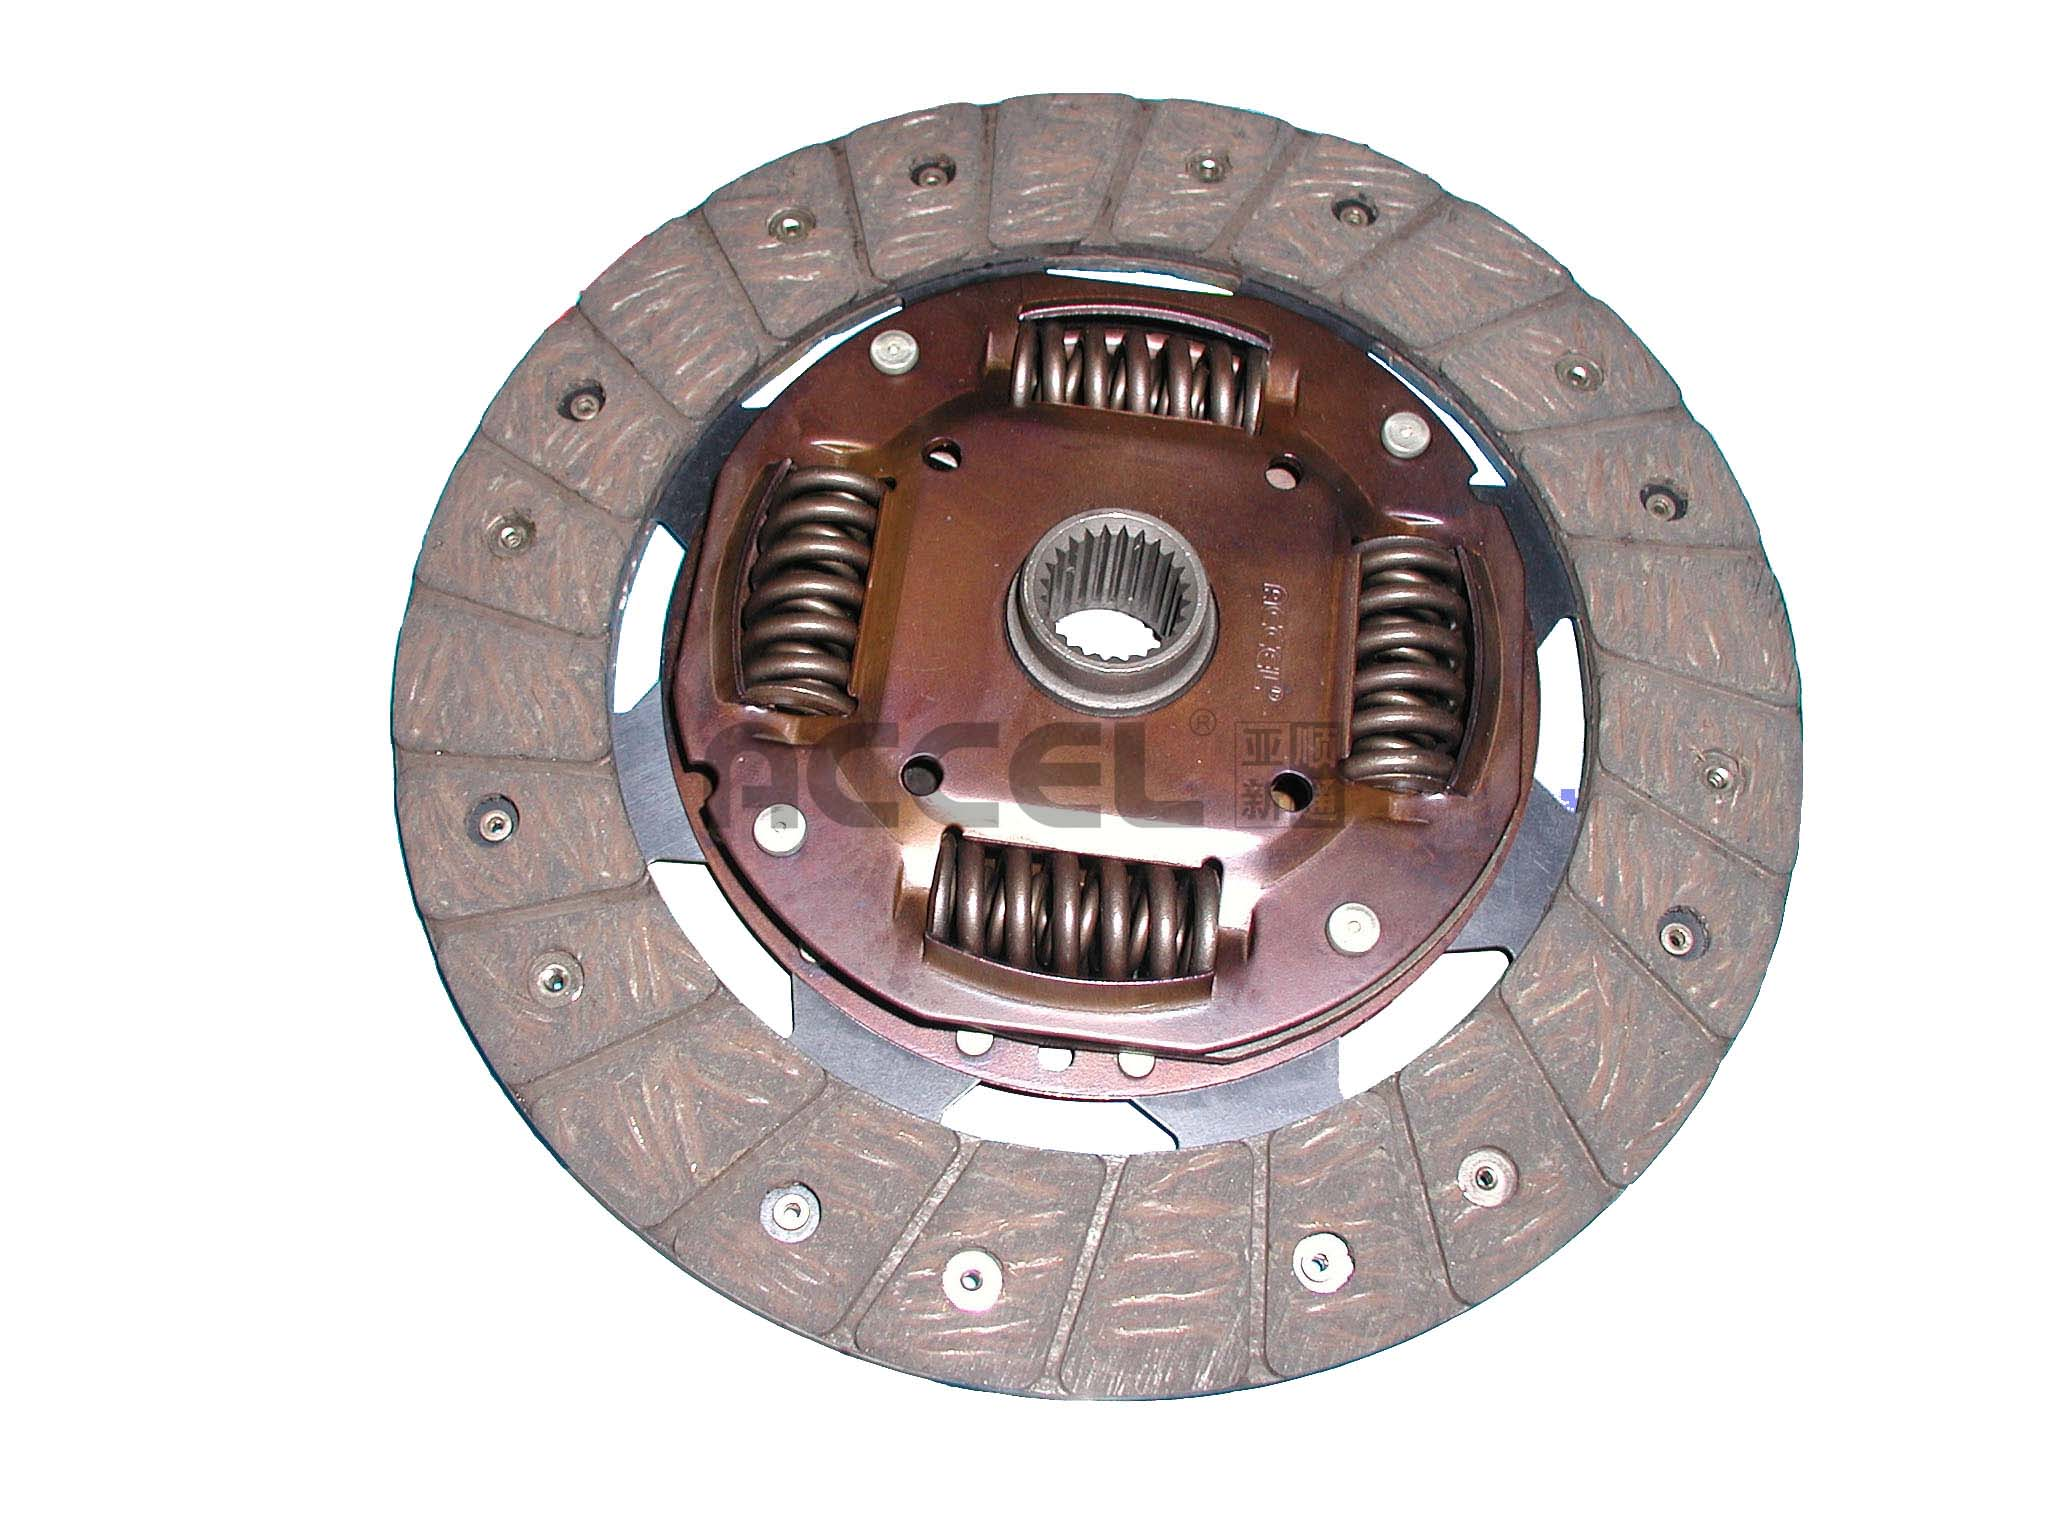 Clutch Disc/OE:1862 535 001/210*145*24*20.6/AG-033TS/CHINESE VEHICLES/CL0728/321 0025 11